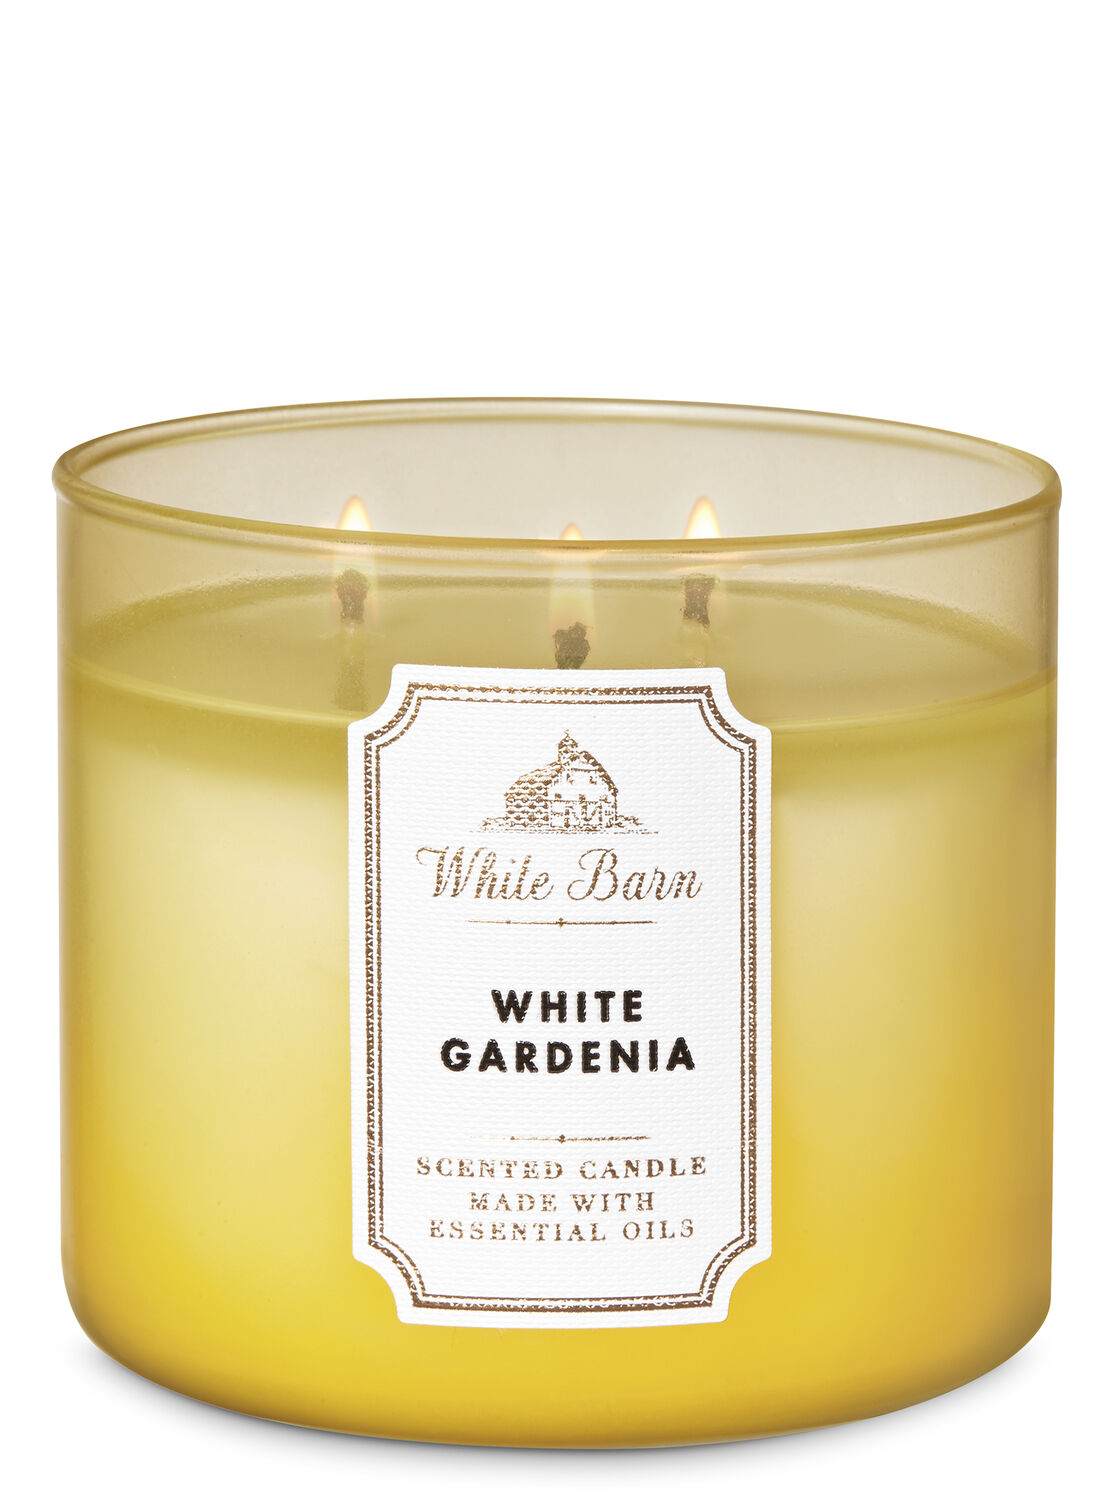 DW Home Peony Blossom Large 3 Wick Candle with Beautiful Floral Lid